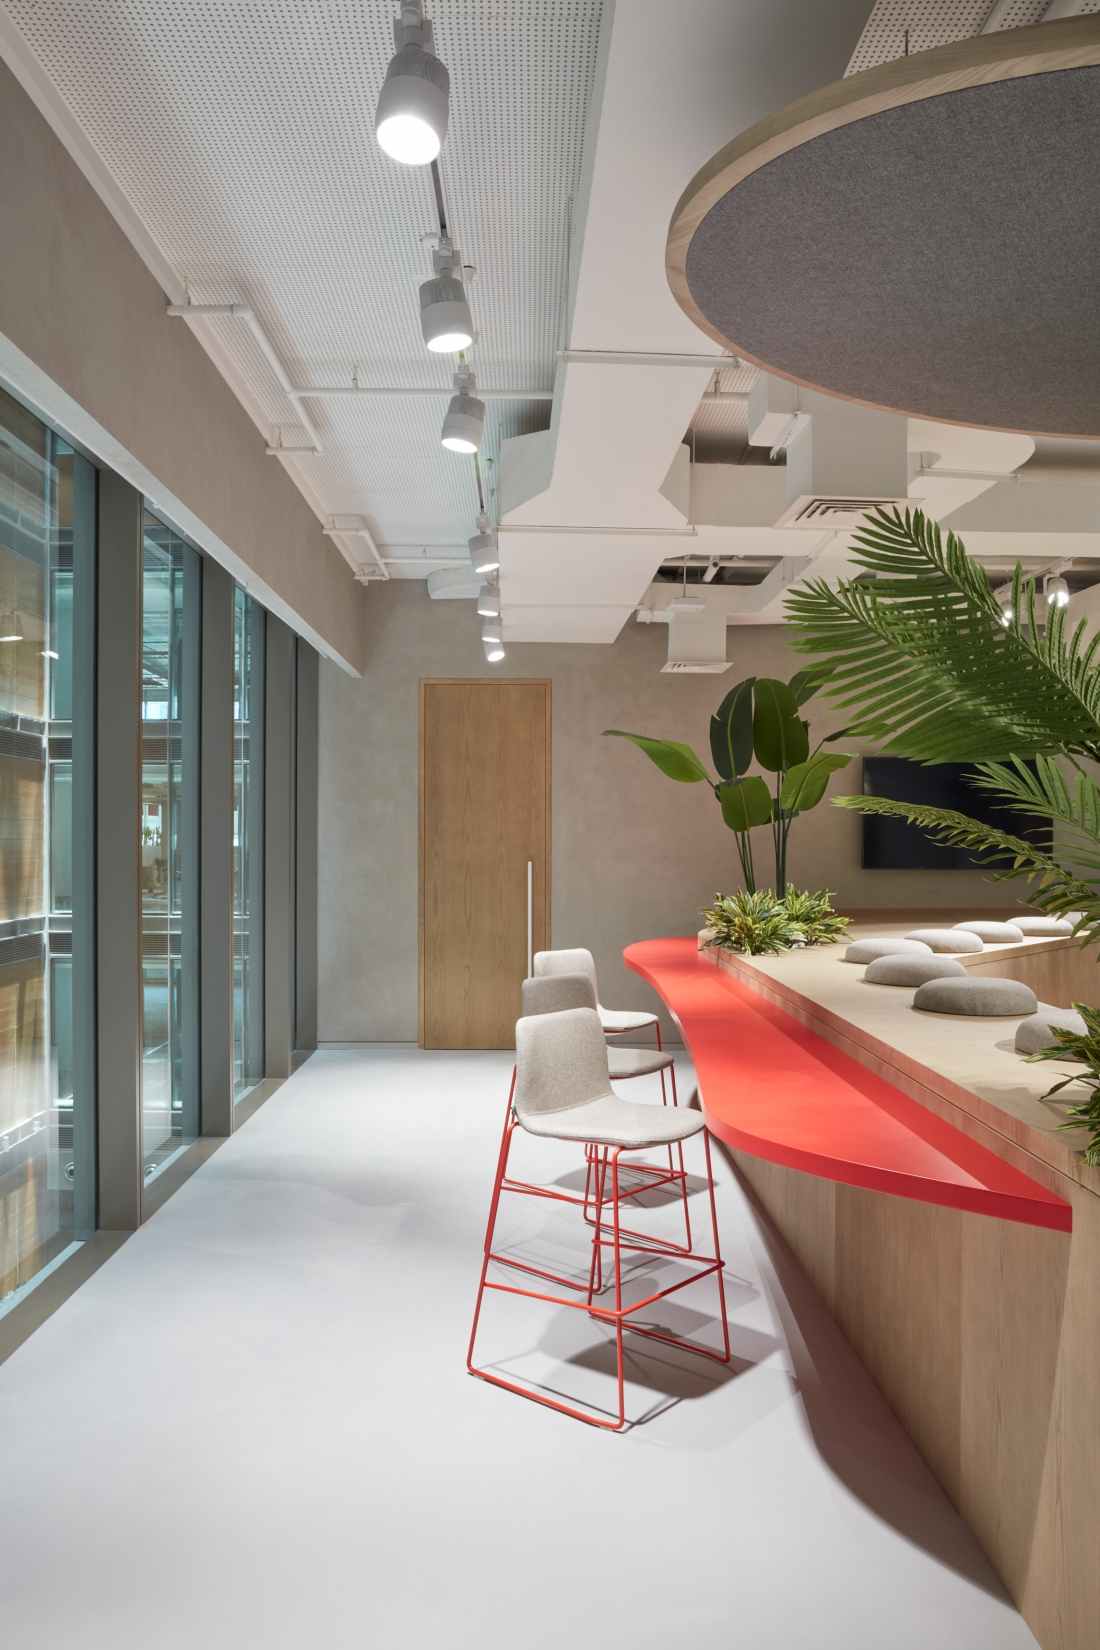 Roar Design Studio - Middle Eastern headquarters of leading Japanese pharmaceutical company Takeda, located in Dubai's pioneering business district, One Central.